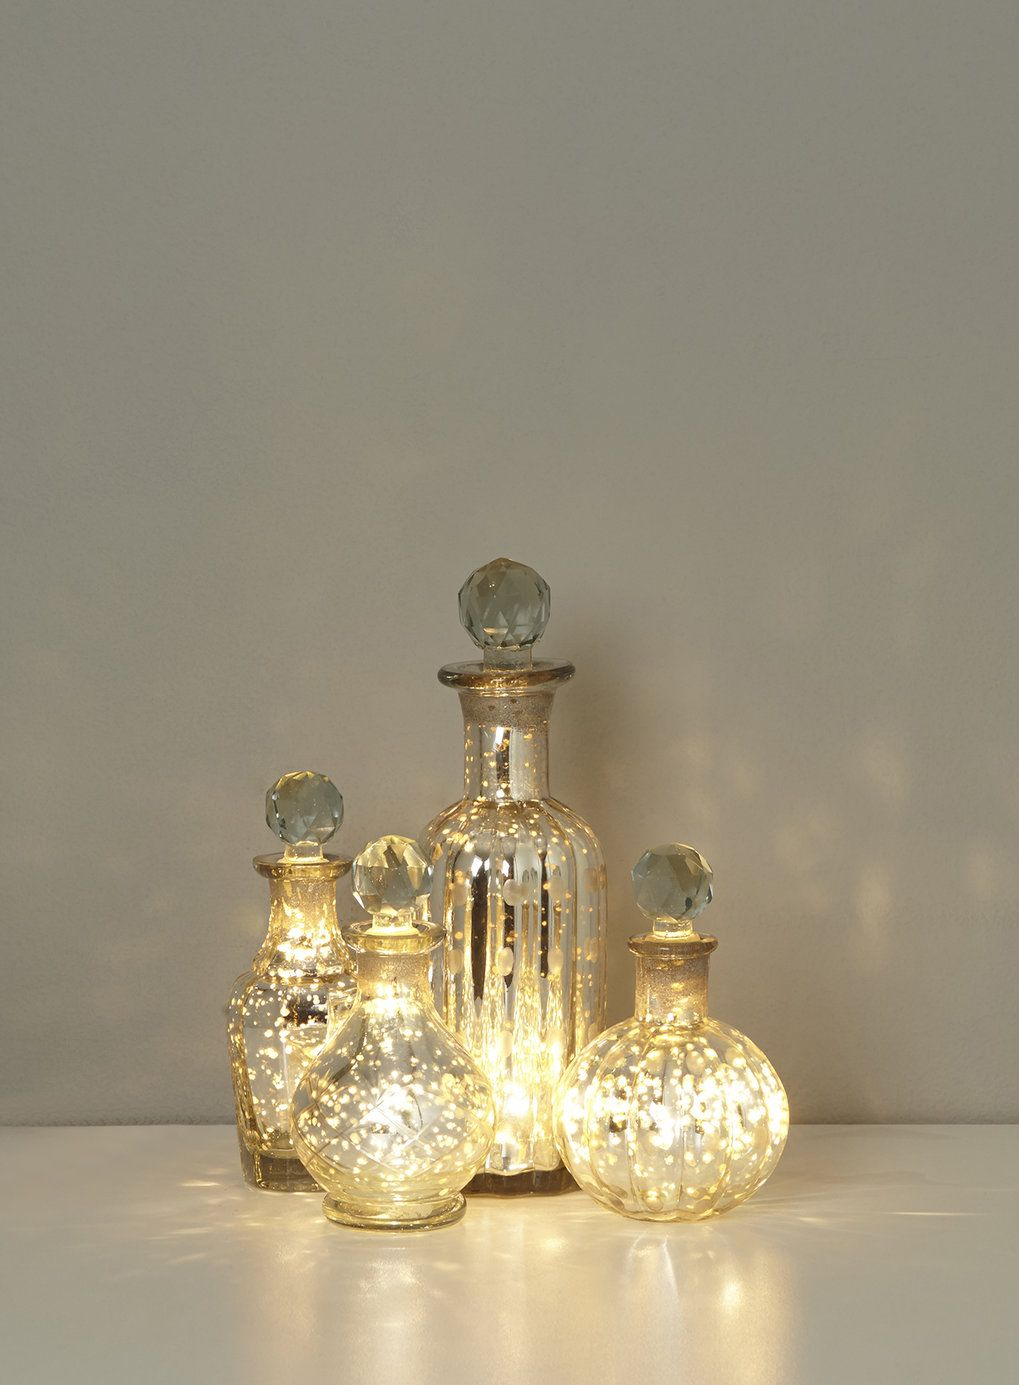 Aerin cluster table lamp table lamps home lighting aerin cluster table lamp table lamps home lighting furniture bhs mozeypictures Image collections